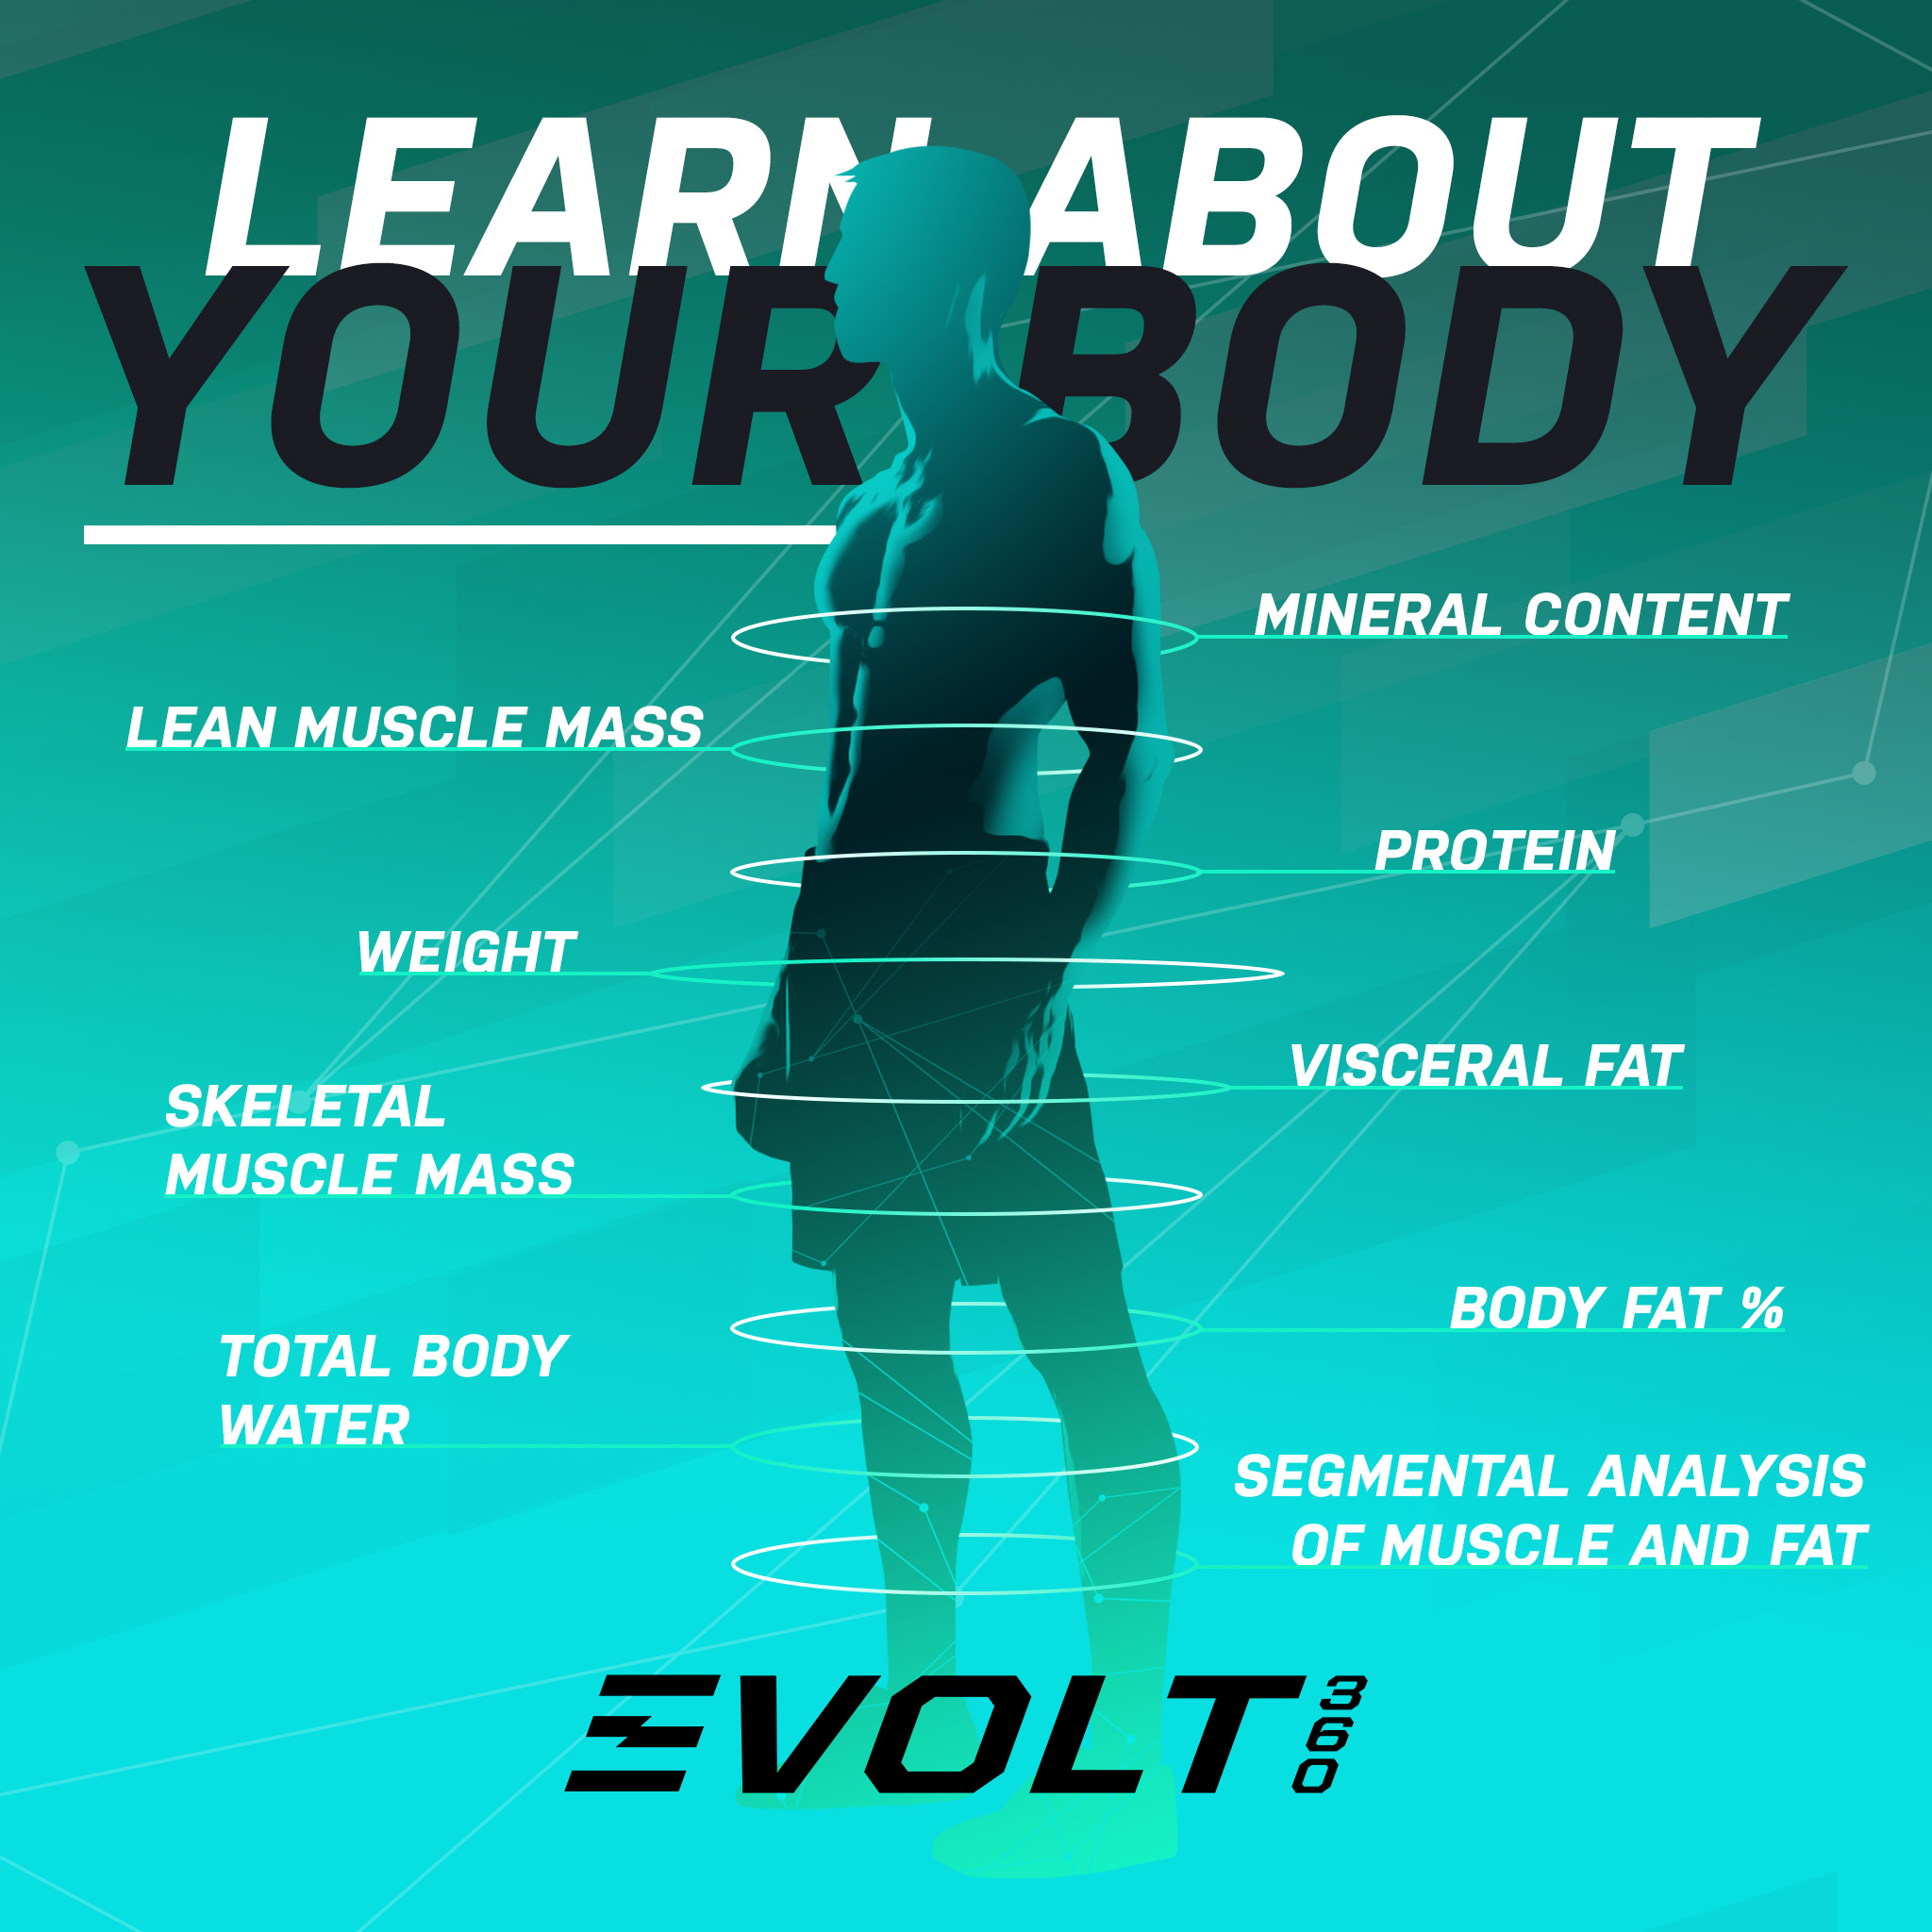 Learn-About-Your-Body_2.jpg